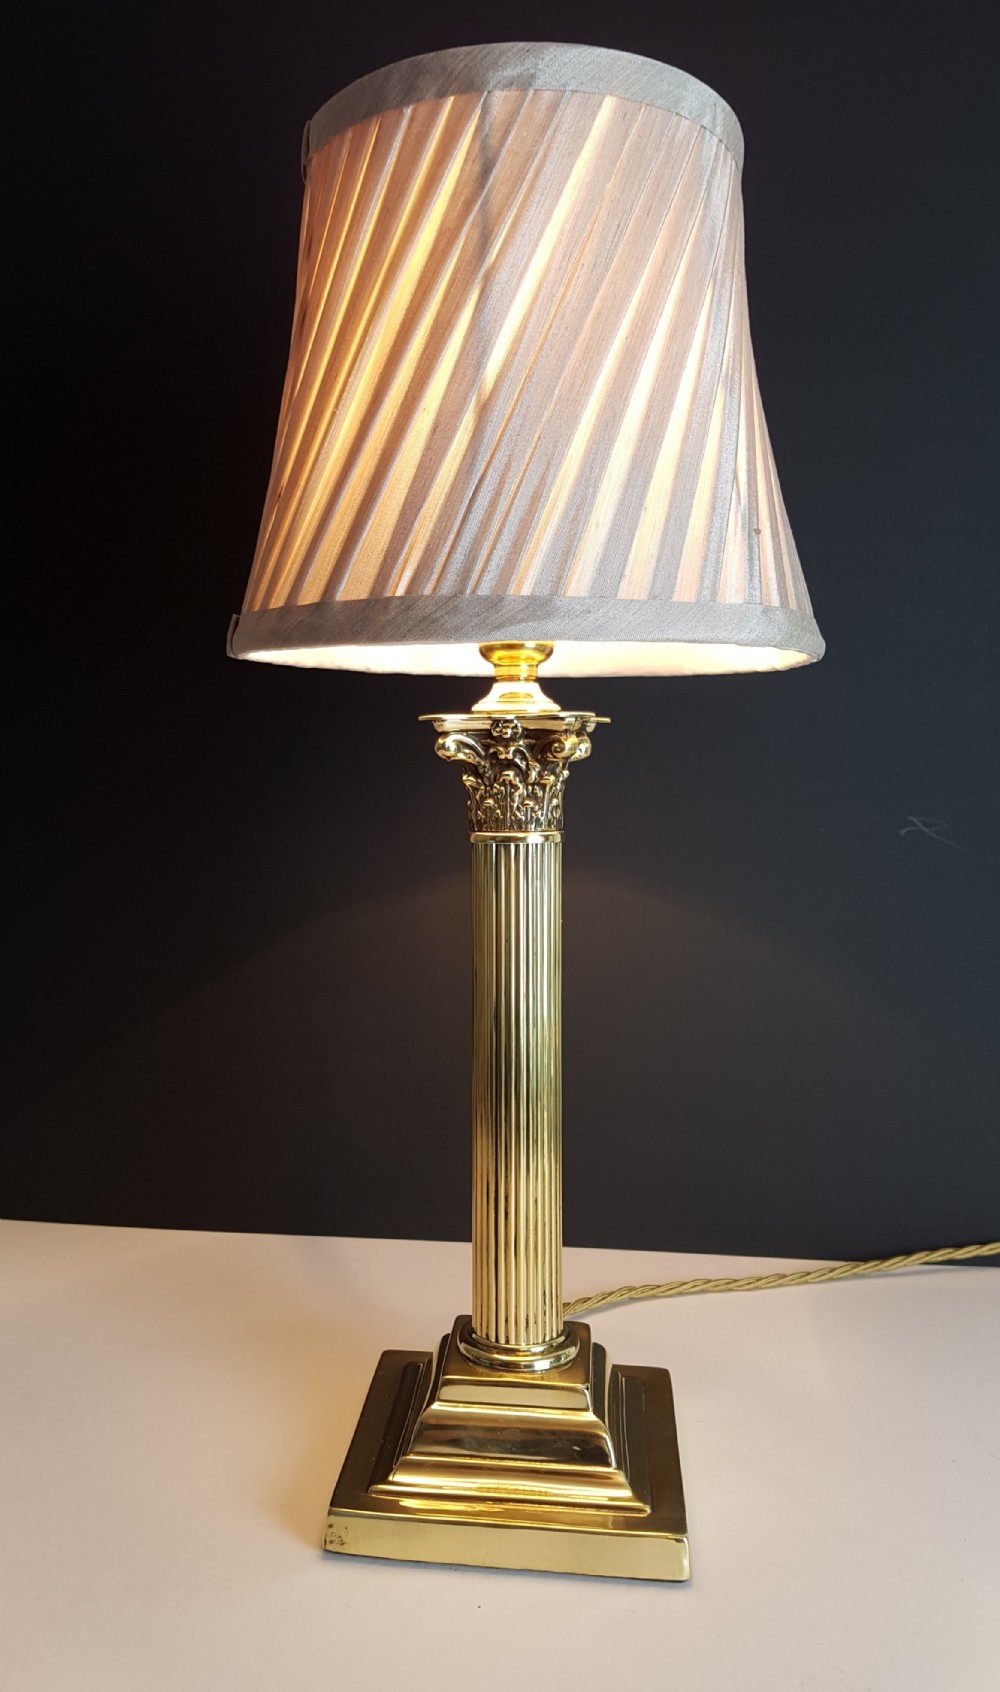 C1920 brass corinthian column table lamp with champagne twist c1920 brass corinthian column table lamp with champagne twist pleat shade rewired greentooth Choice Image